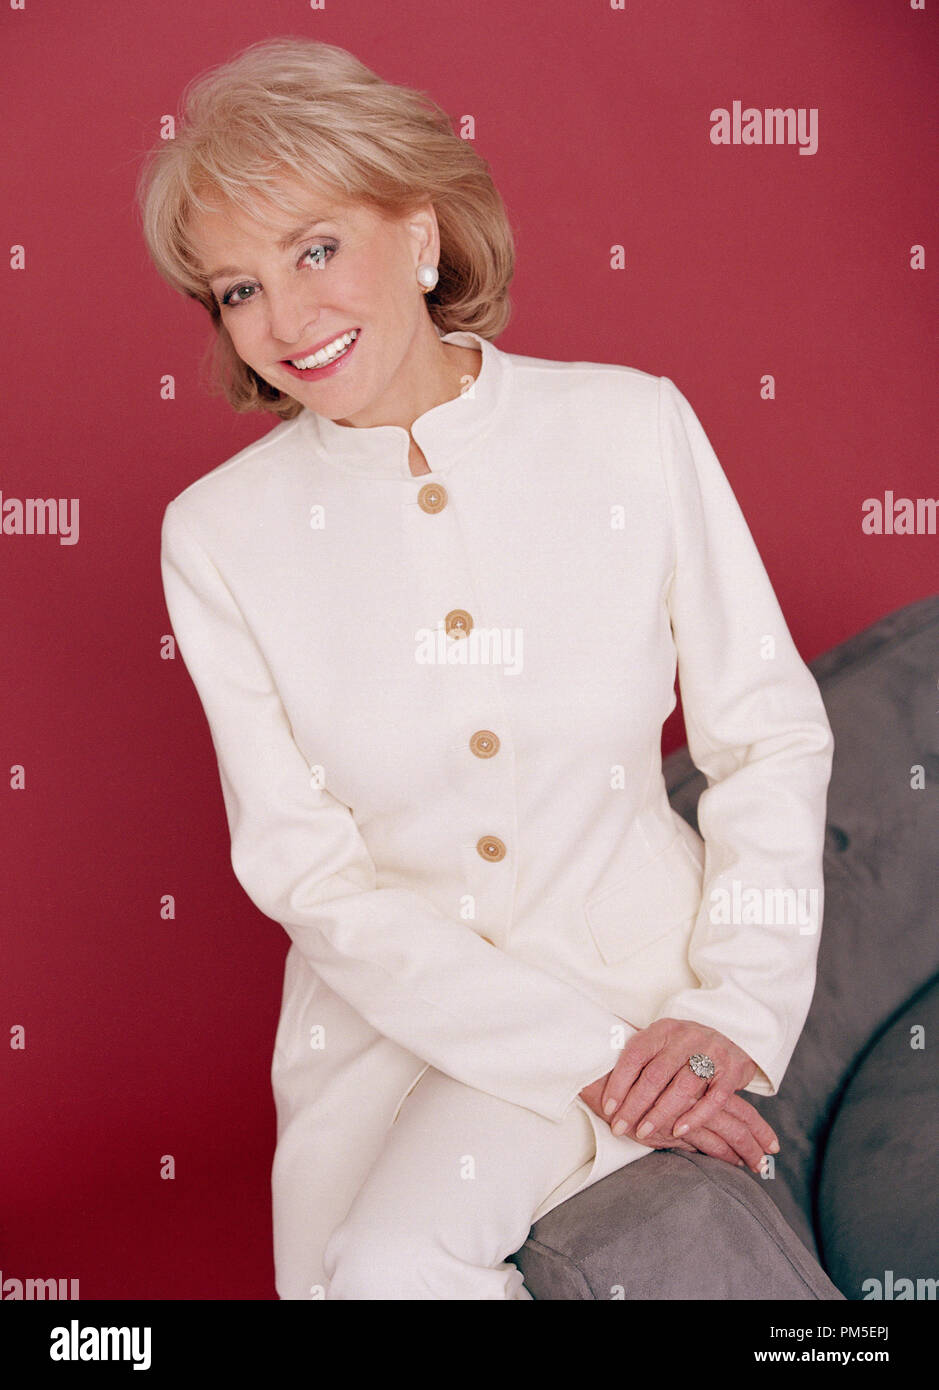 Film Still / Publicity Still from 'The View' Barbara Walters 2006 File Reference # 307371011THA  For Editorial Use Only -  All Rights Reserved - Stock Image